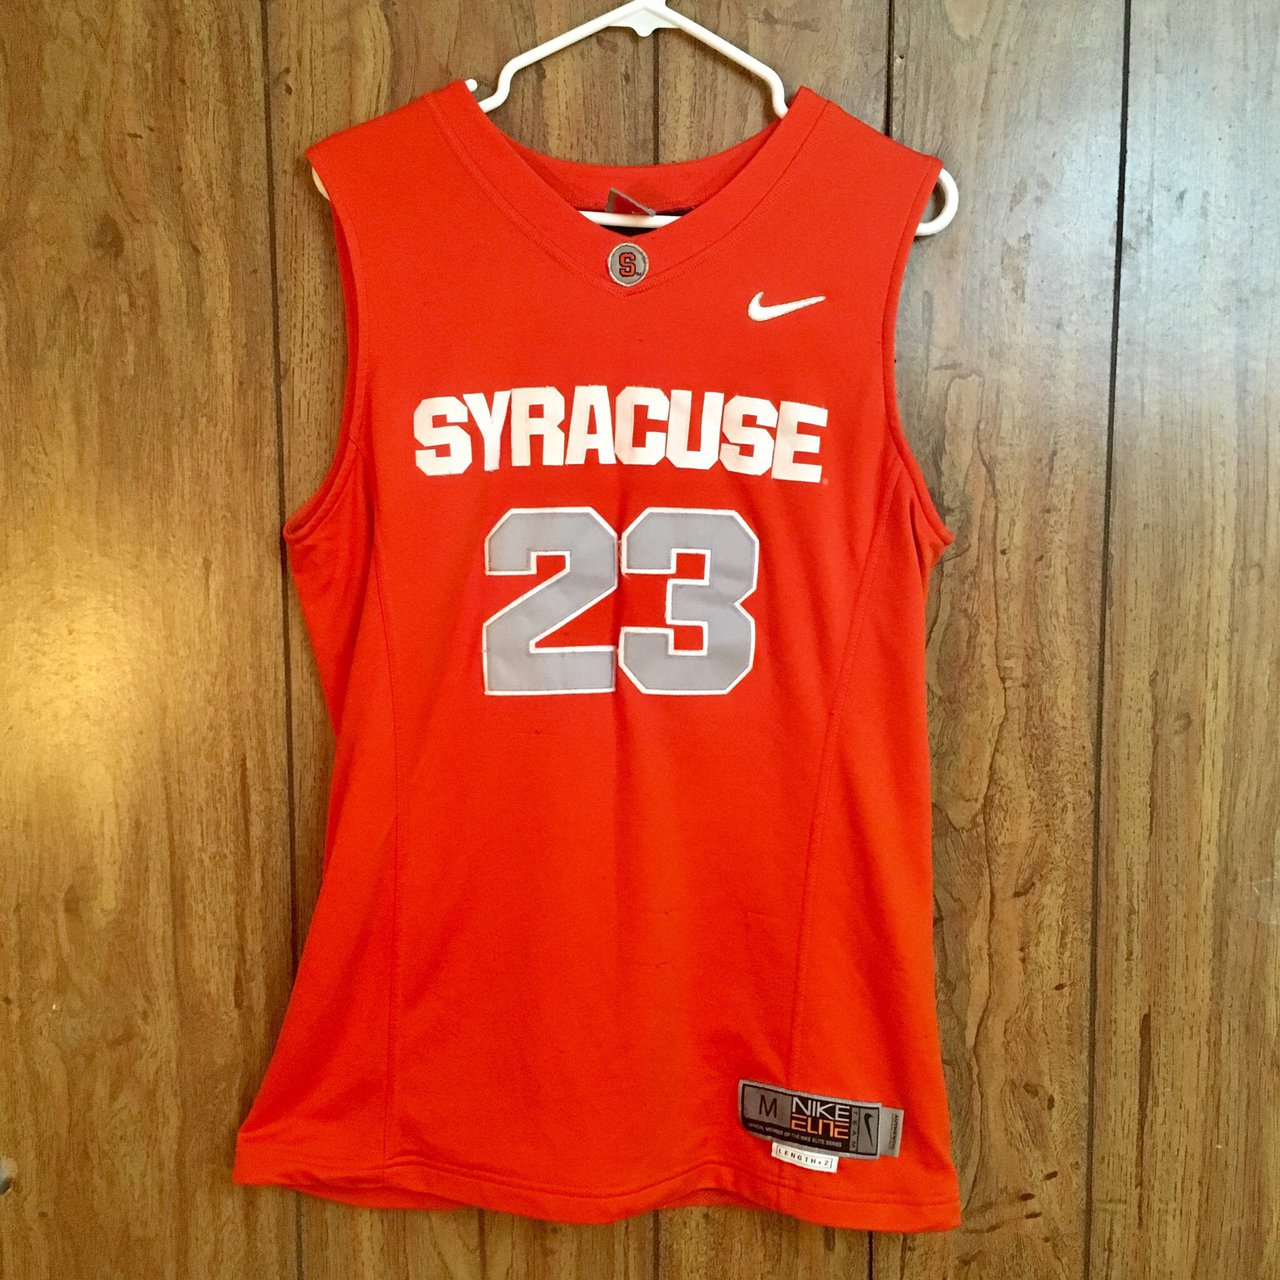 Syracuse Orange Men S Basketball Jersey 23 Authentic With Depop